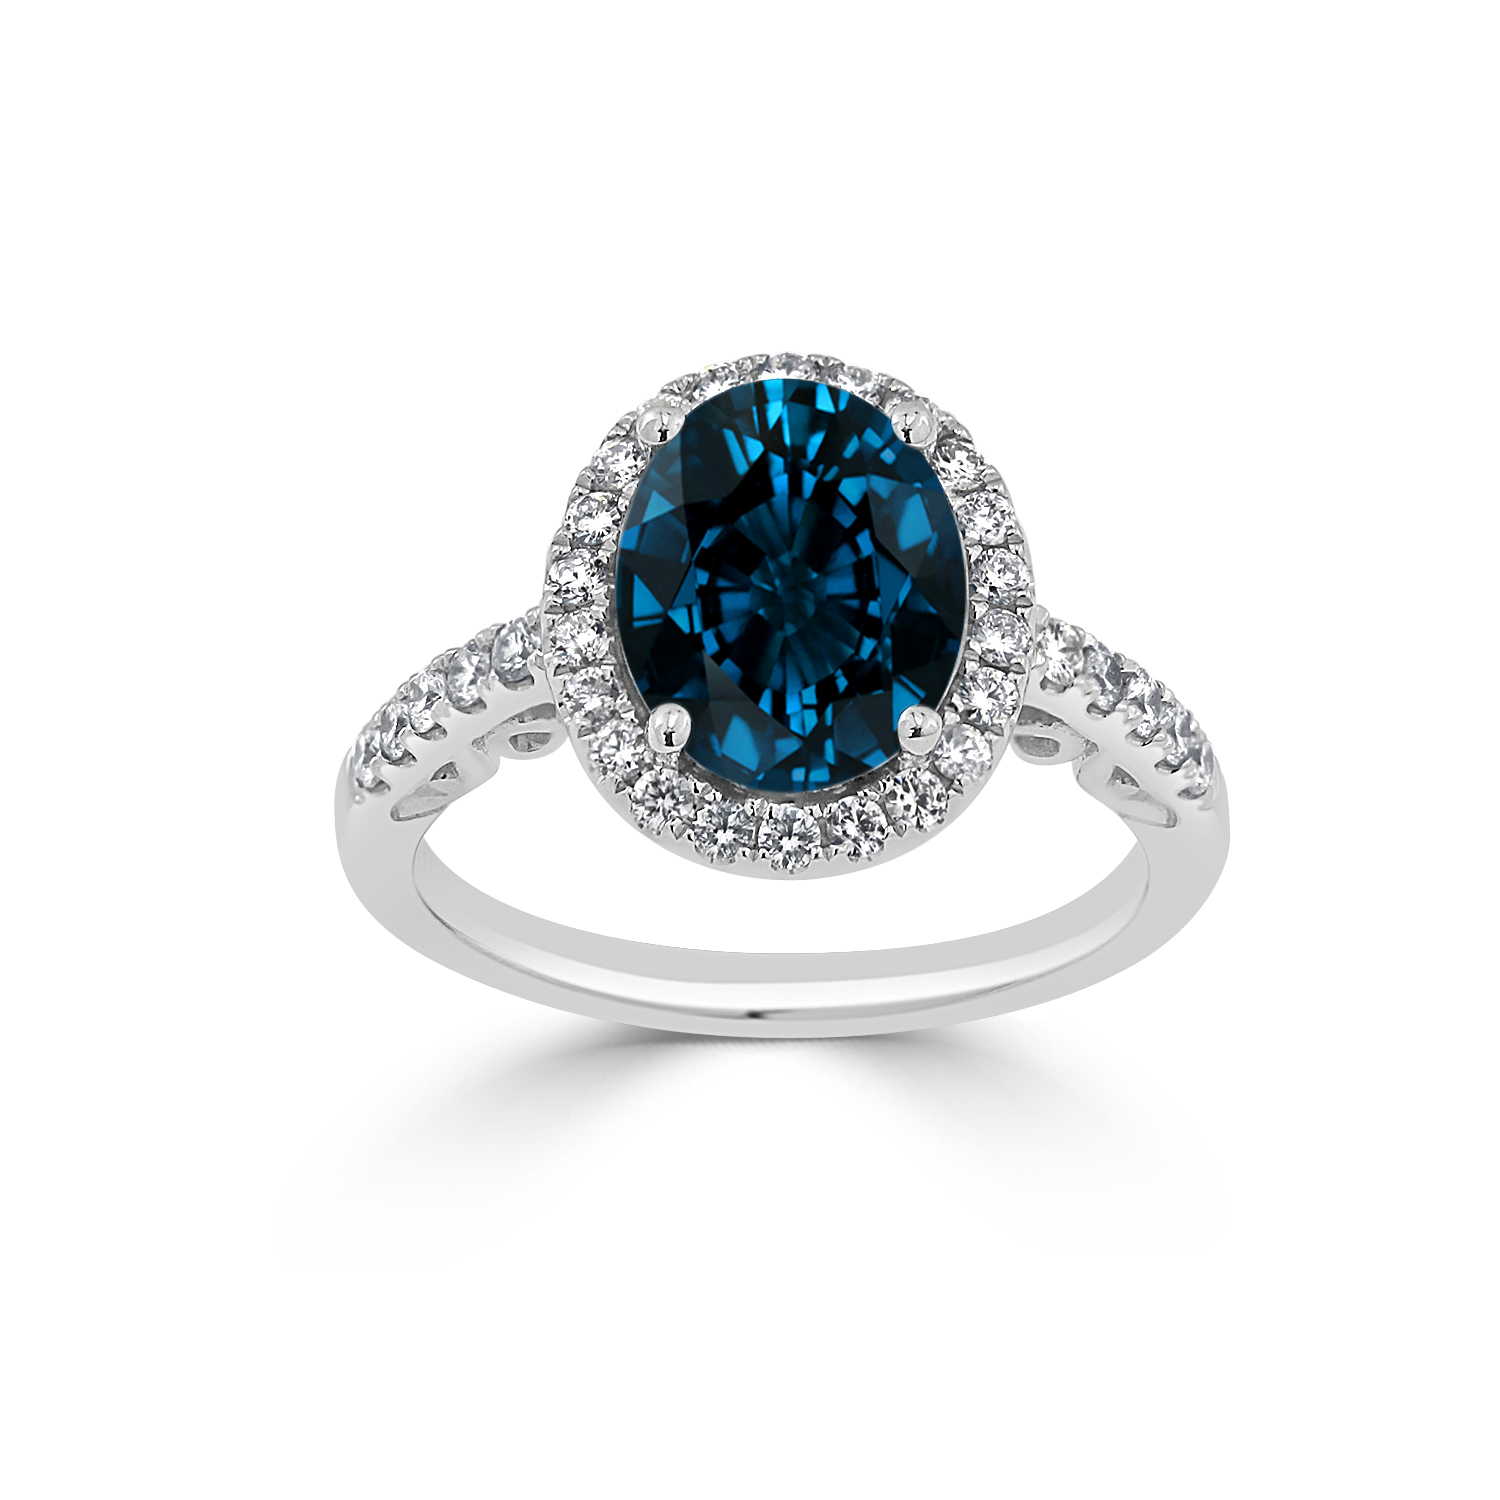 Halo London Blue Topaz Diamond Ring in 14K White Gold with 2.90 carat Oval London Blue Topaz